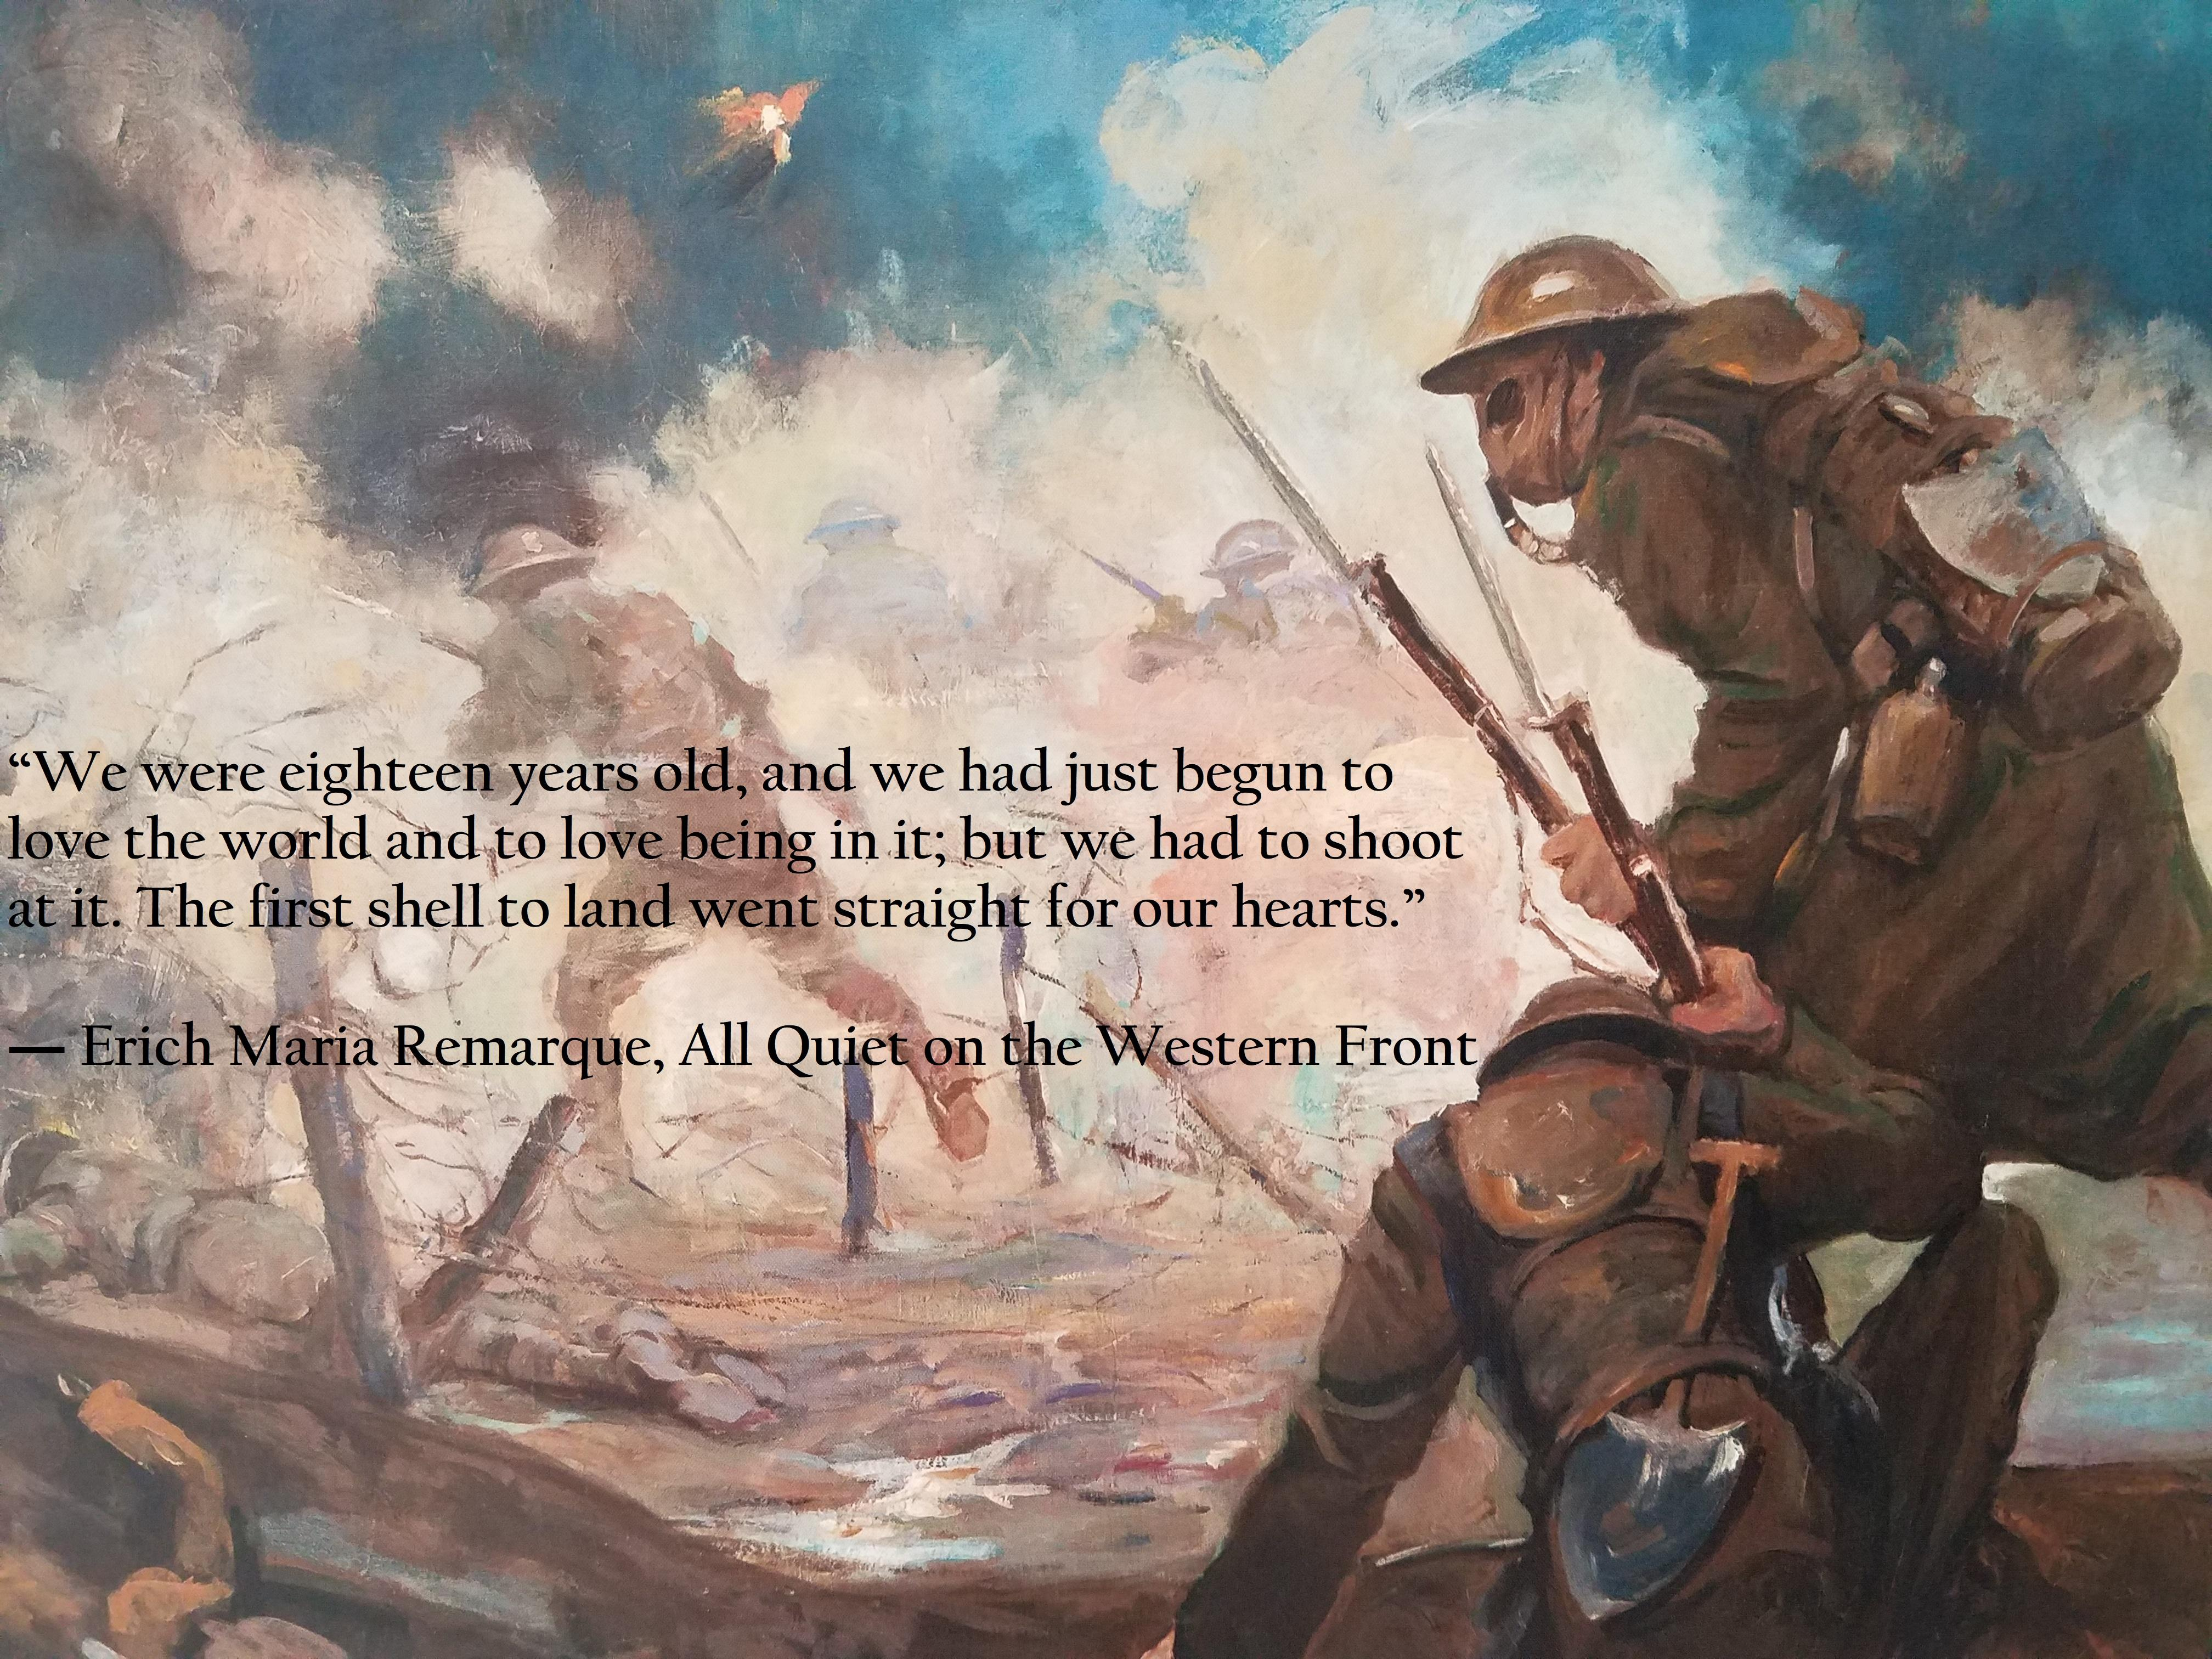 """We had just begun to love the world…"" – Erich Maria Remarque, All Quiet on the Western Front [4032 x 3024]"